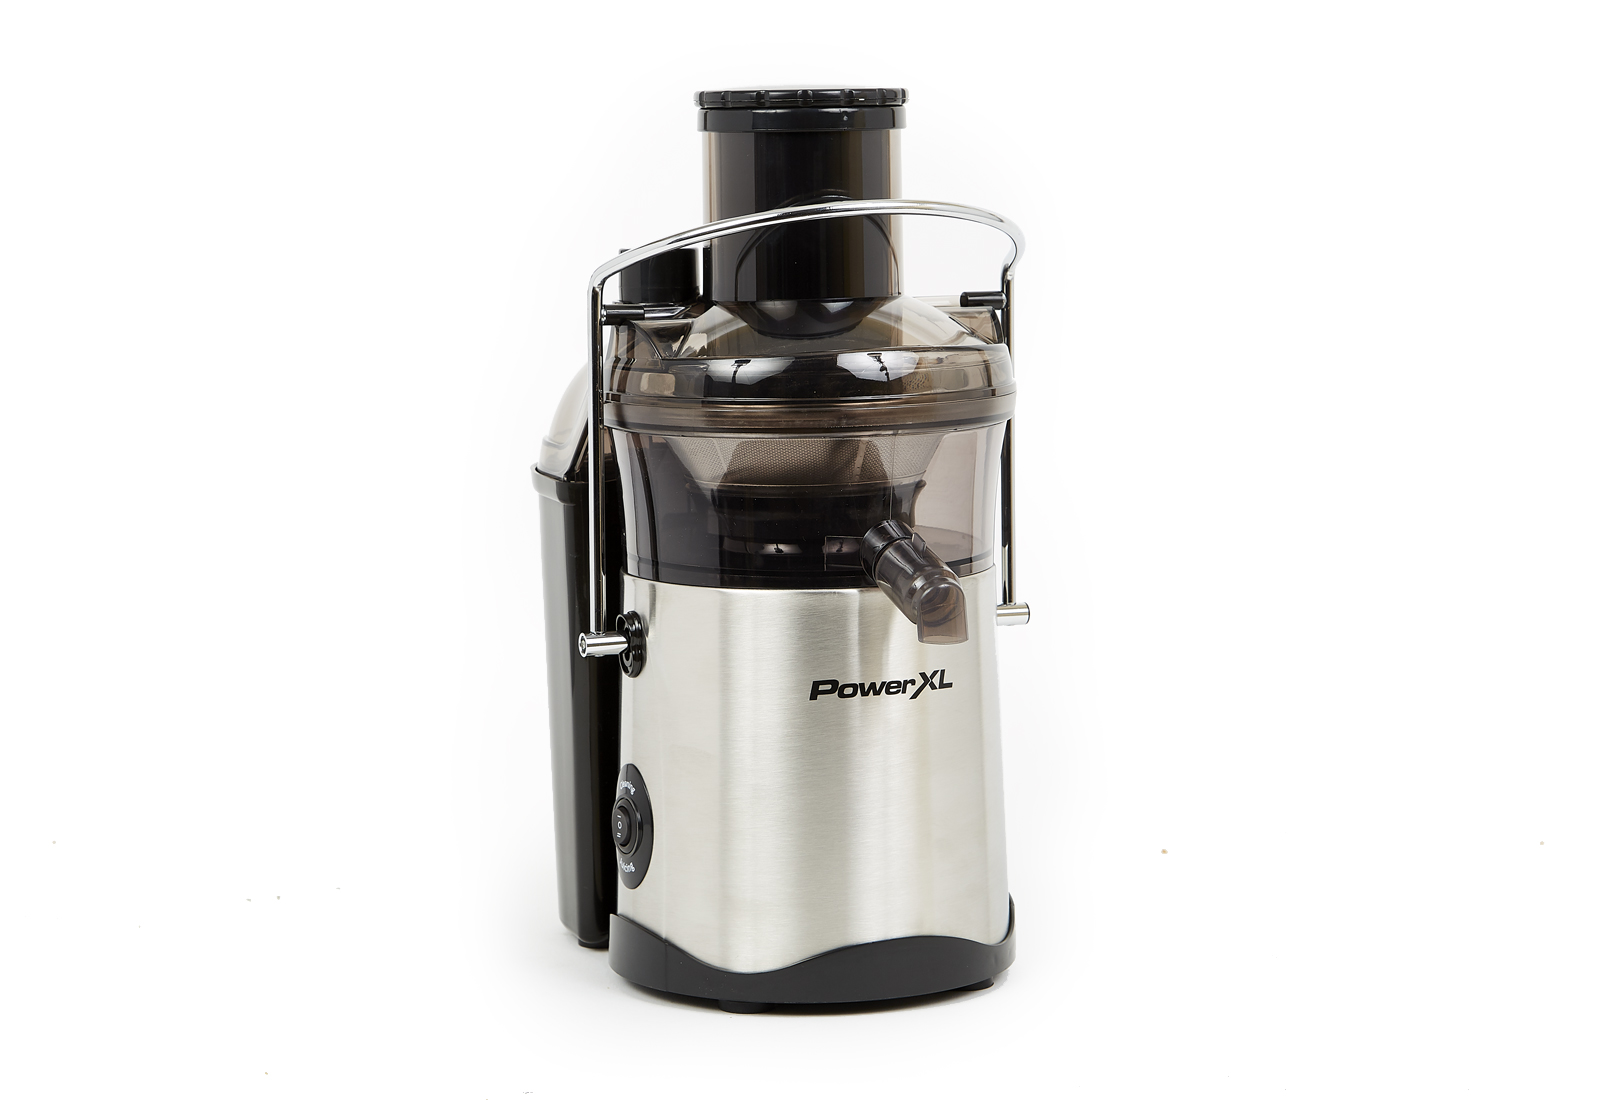 PowerXL Self-Cleaning Juicer Plus Product Image